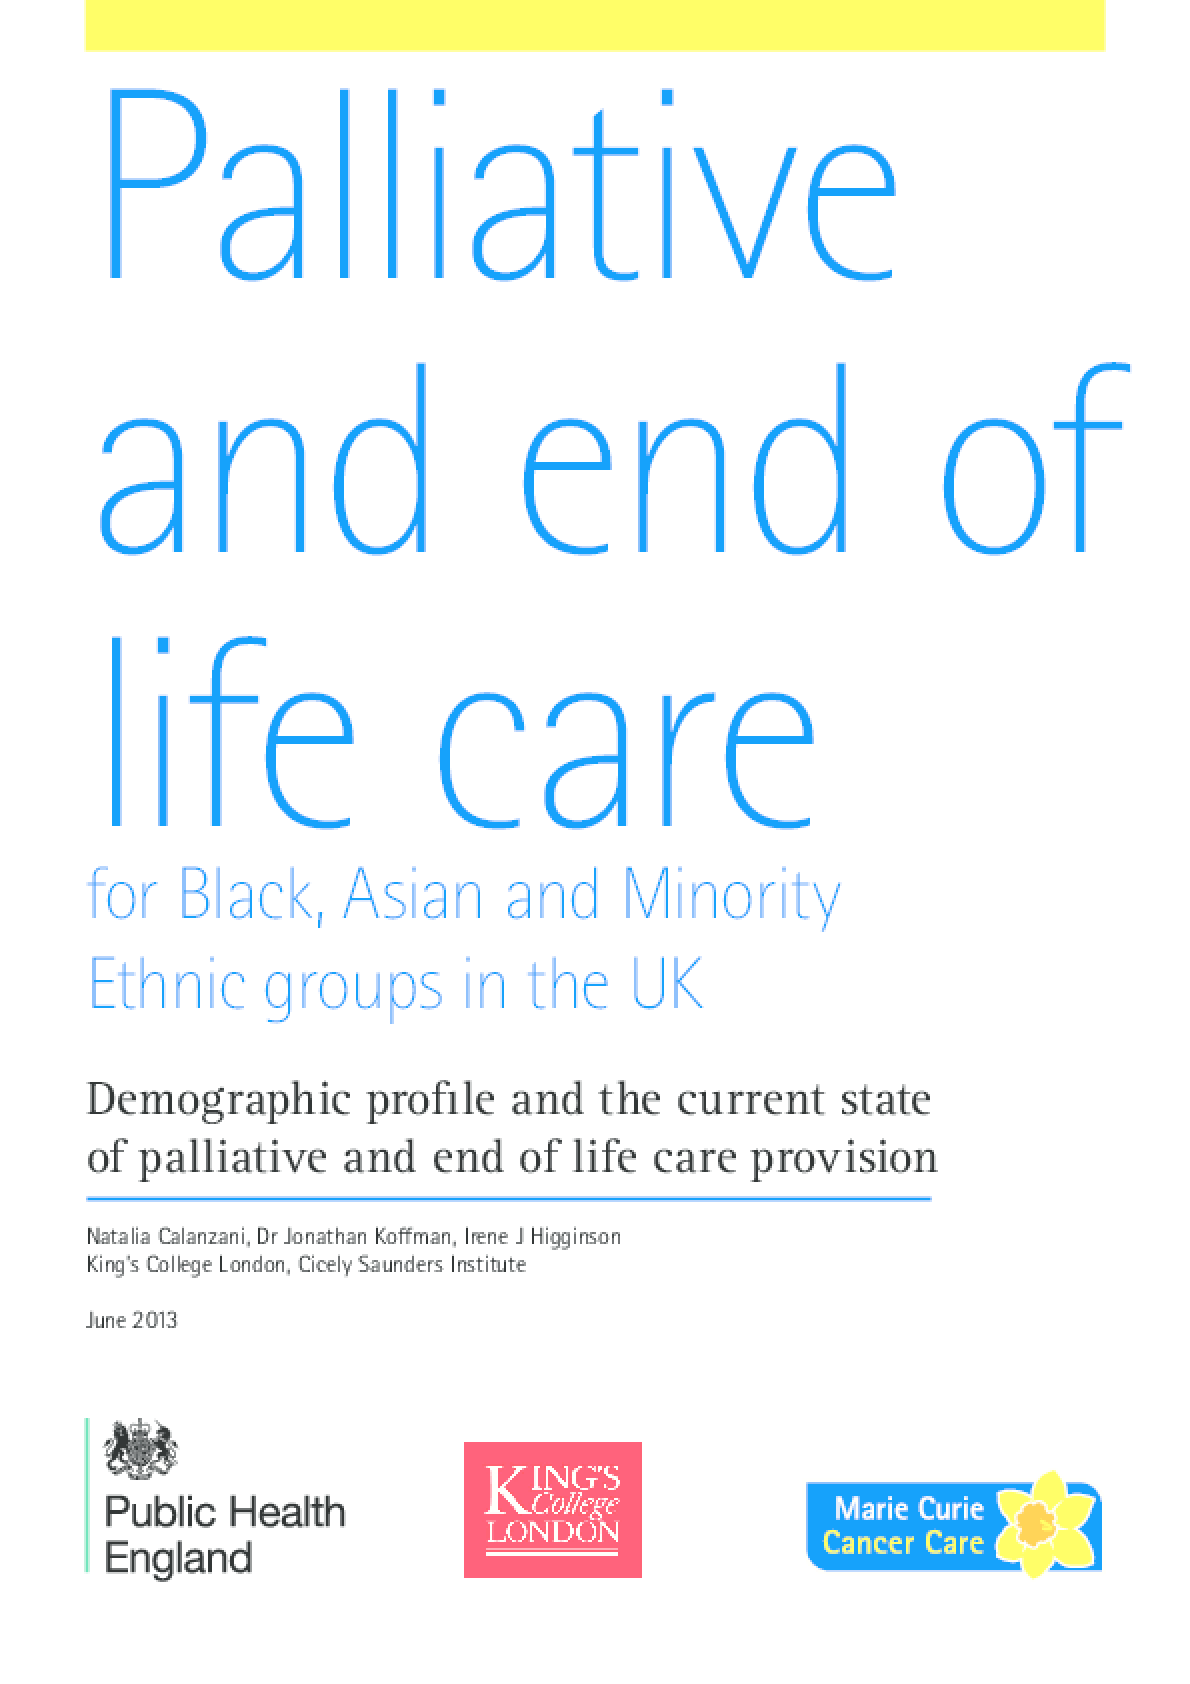 Palliative and End of Life Care for Black, Asian, and Minority Ethnic Groups in the UK